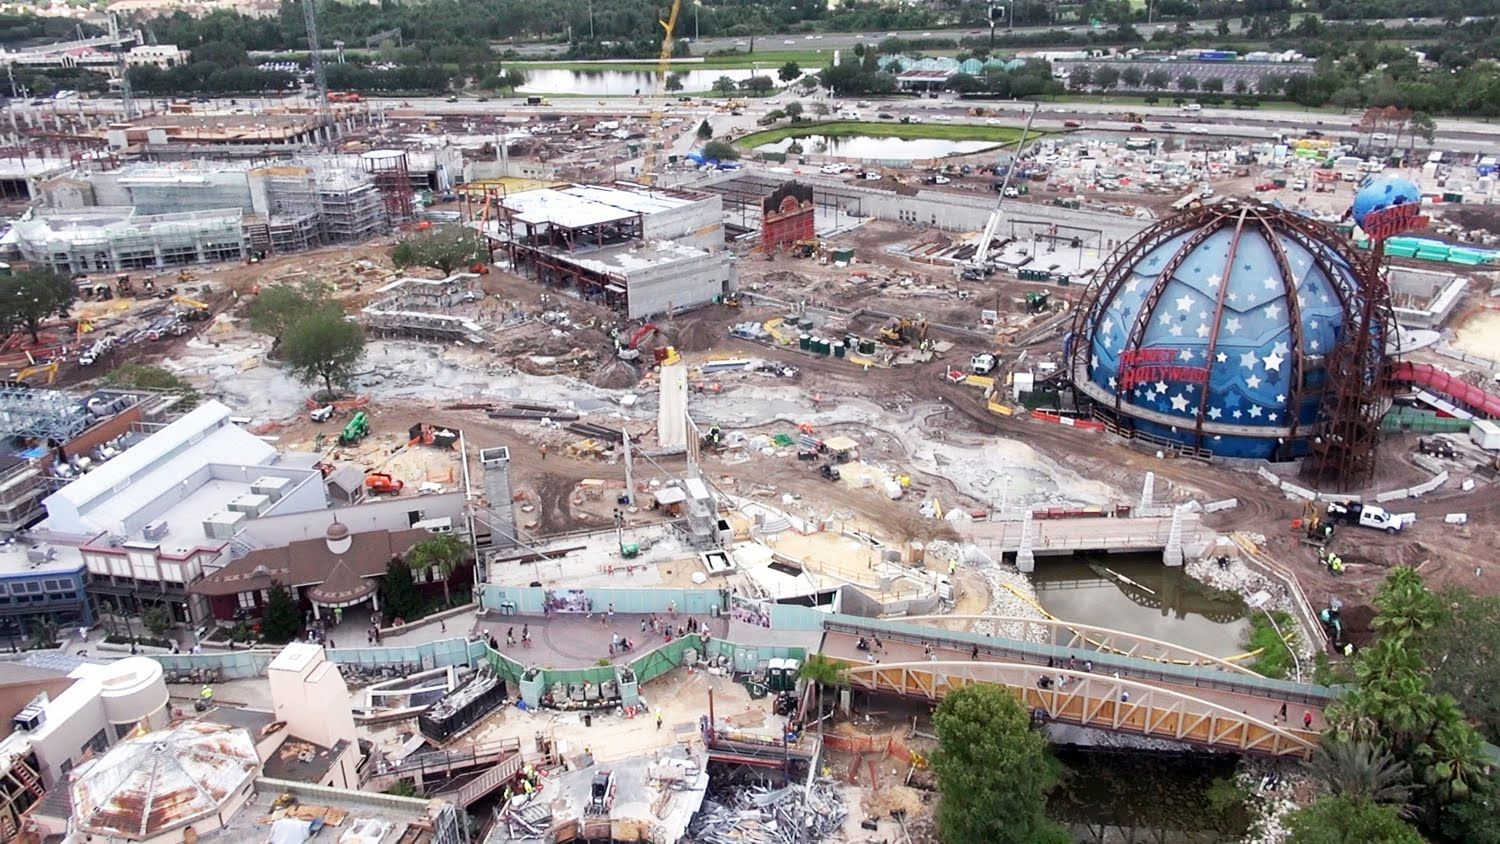 Video: Construction view of Disney Springs from Characters in Flight, June 2015. #disney #disneyworld #wdw #waltdisneyworld #disneysprings #downtowndisney